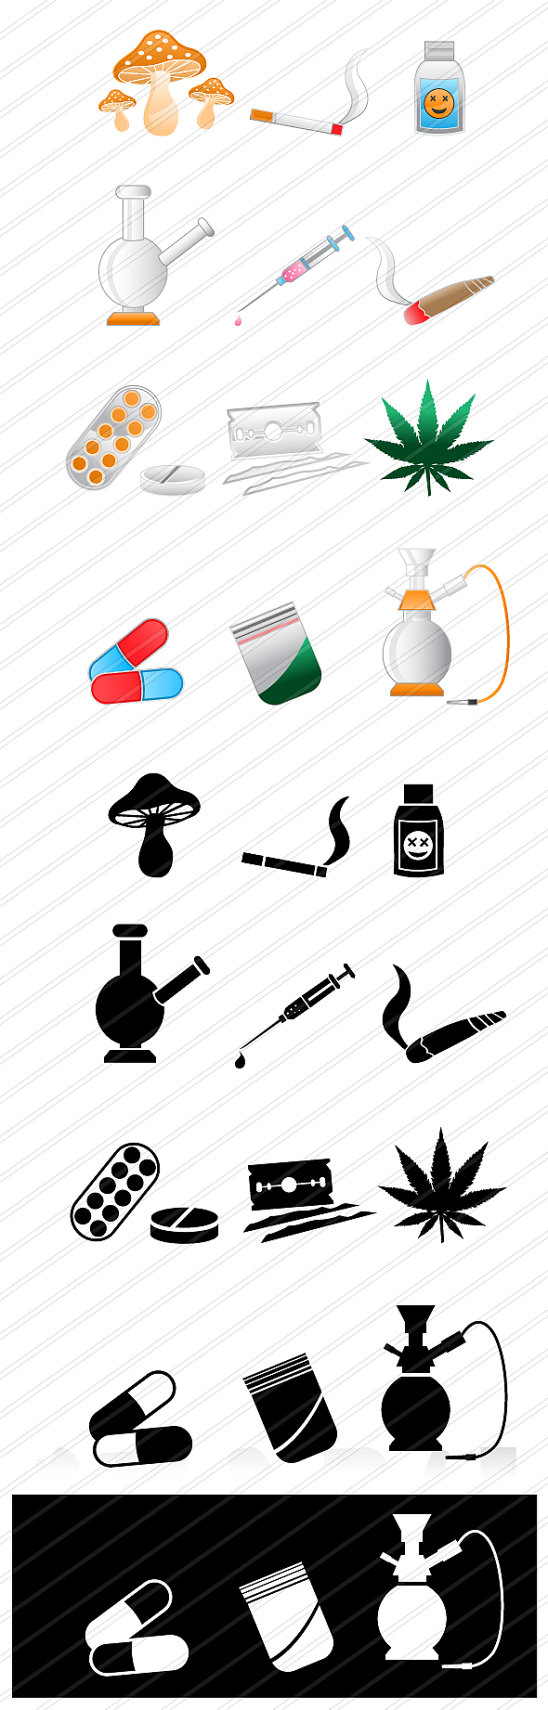 Pin On Clip Art And Icons